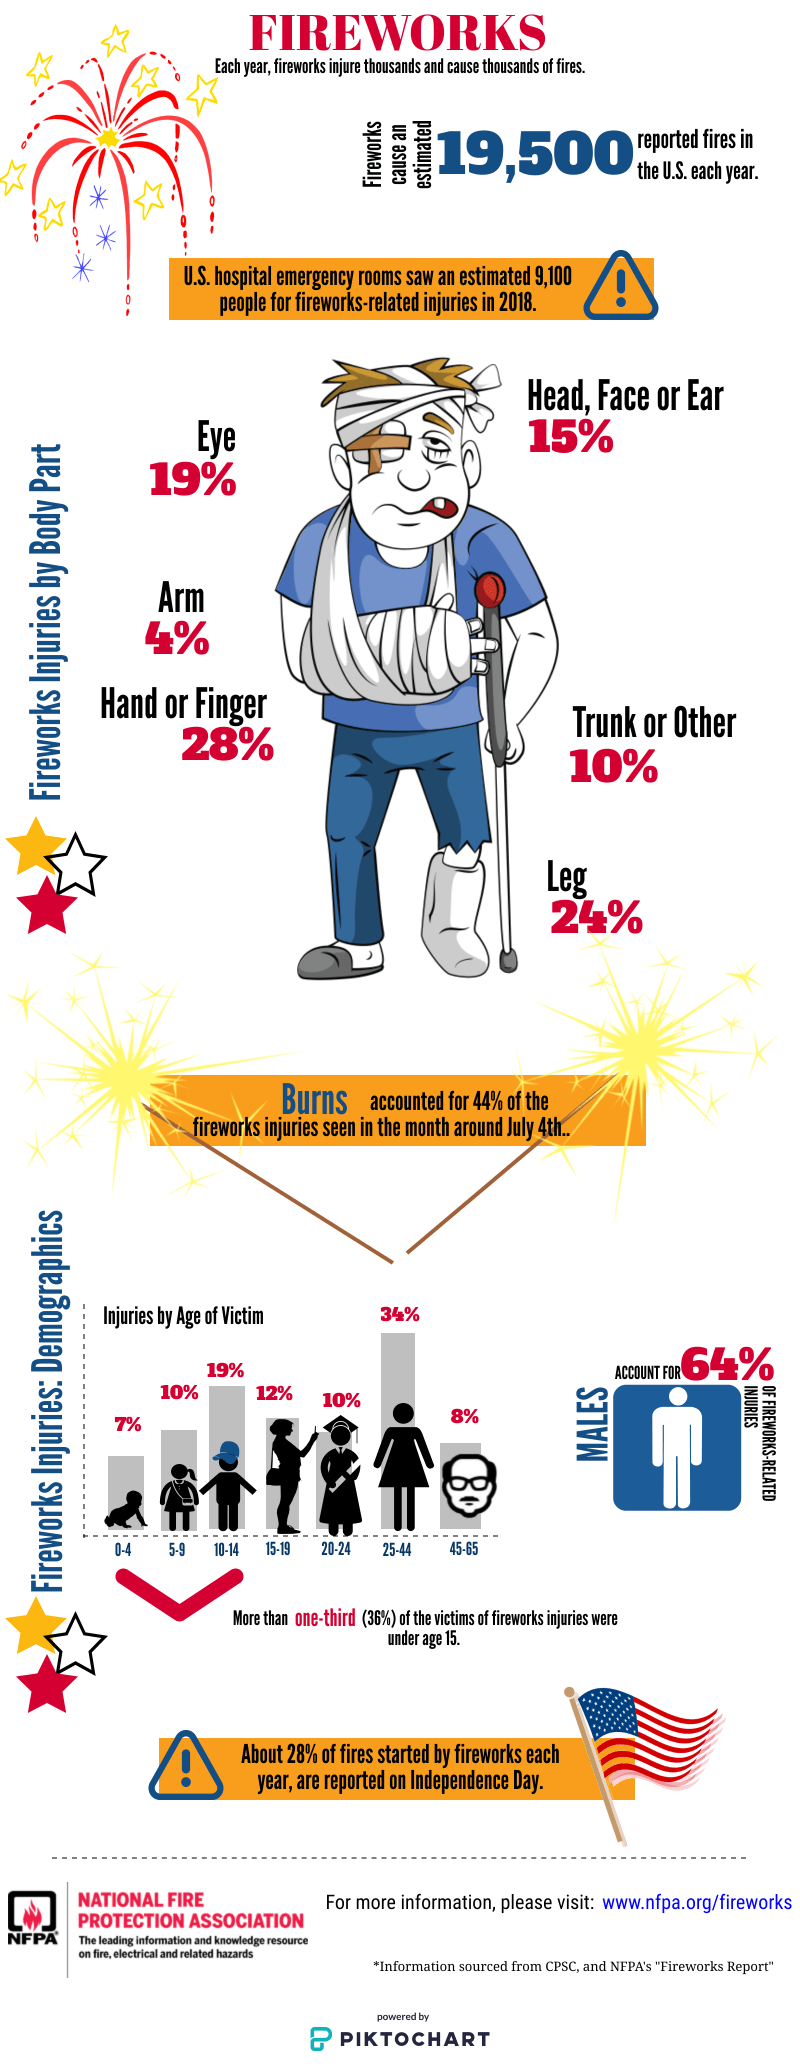 fireworks info graphic from NFPA.org Each year fireworks injure thousand and cause thousands of fires.